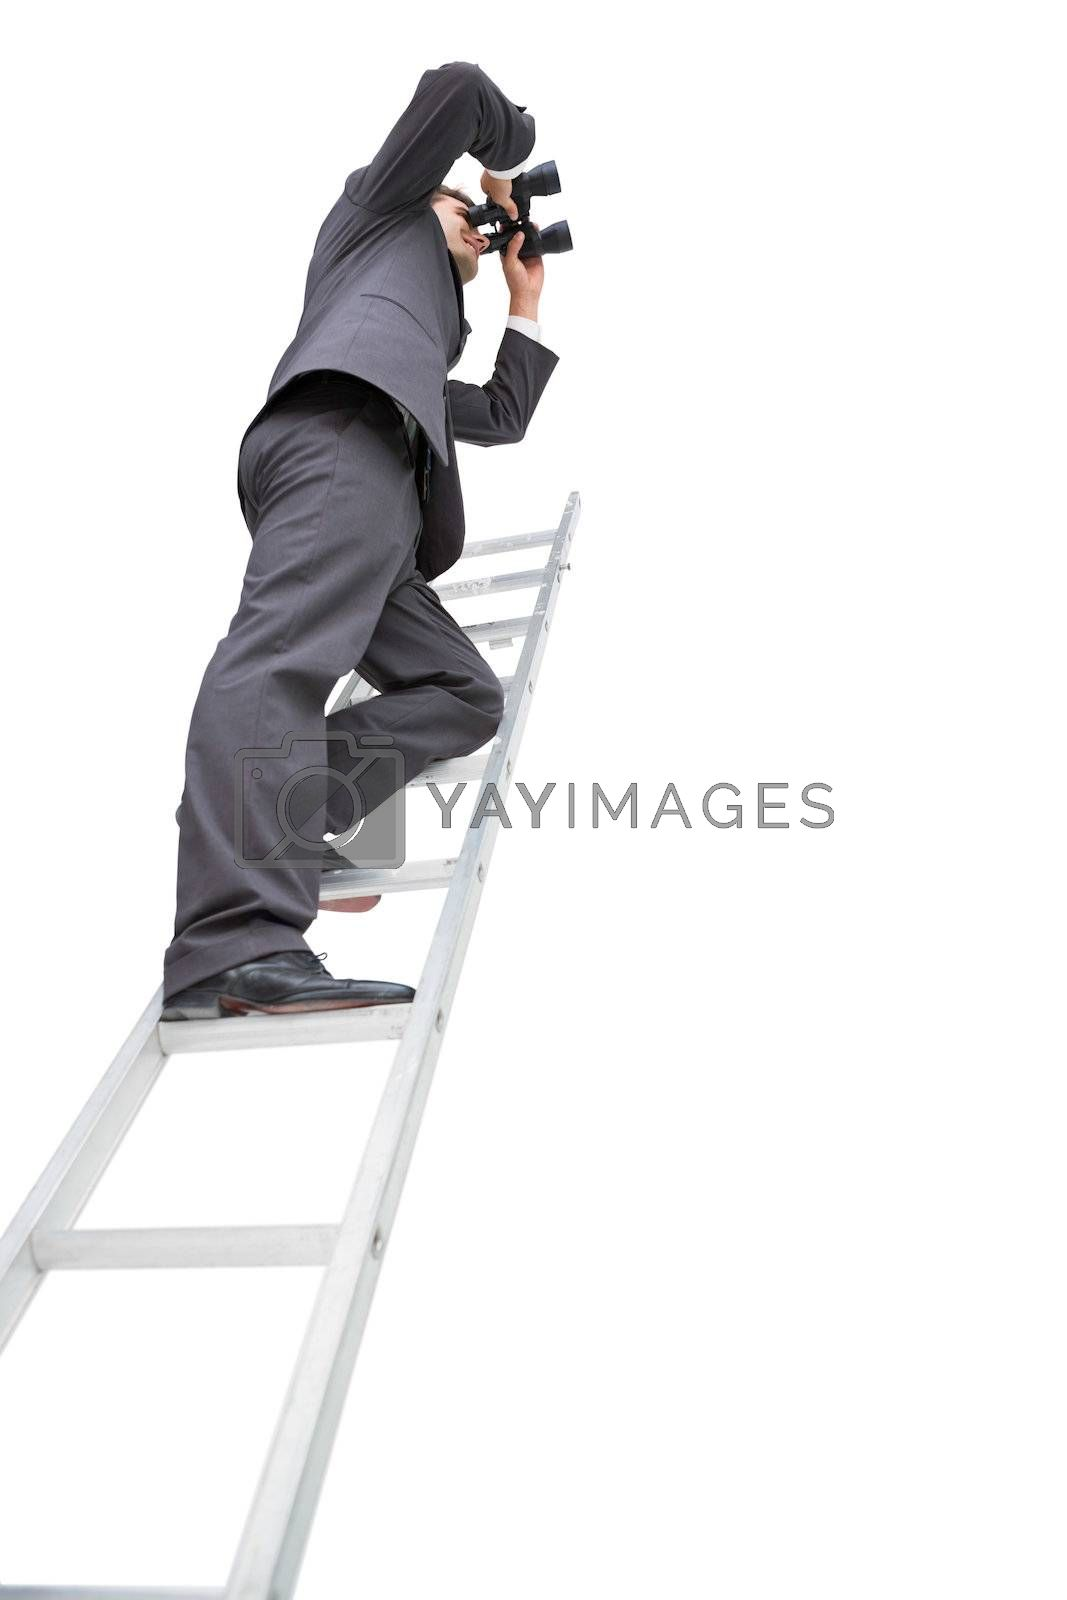 Low angle view of businessman standing on ladder using binoculars by Wavebreakmedia